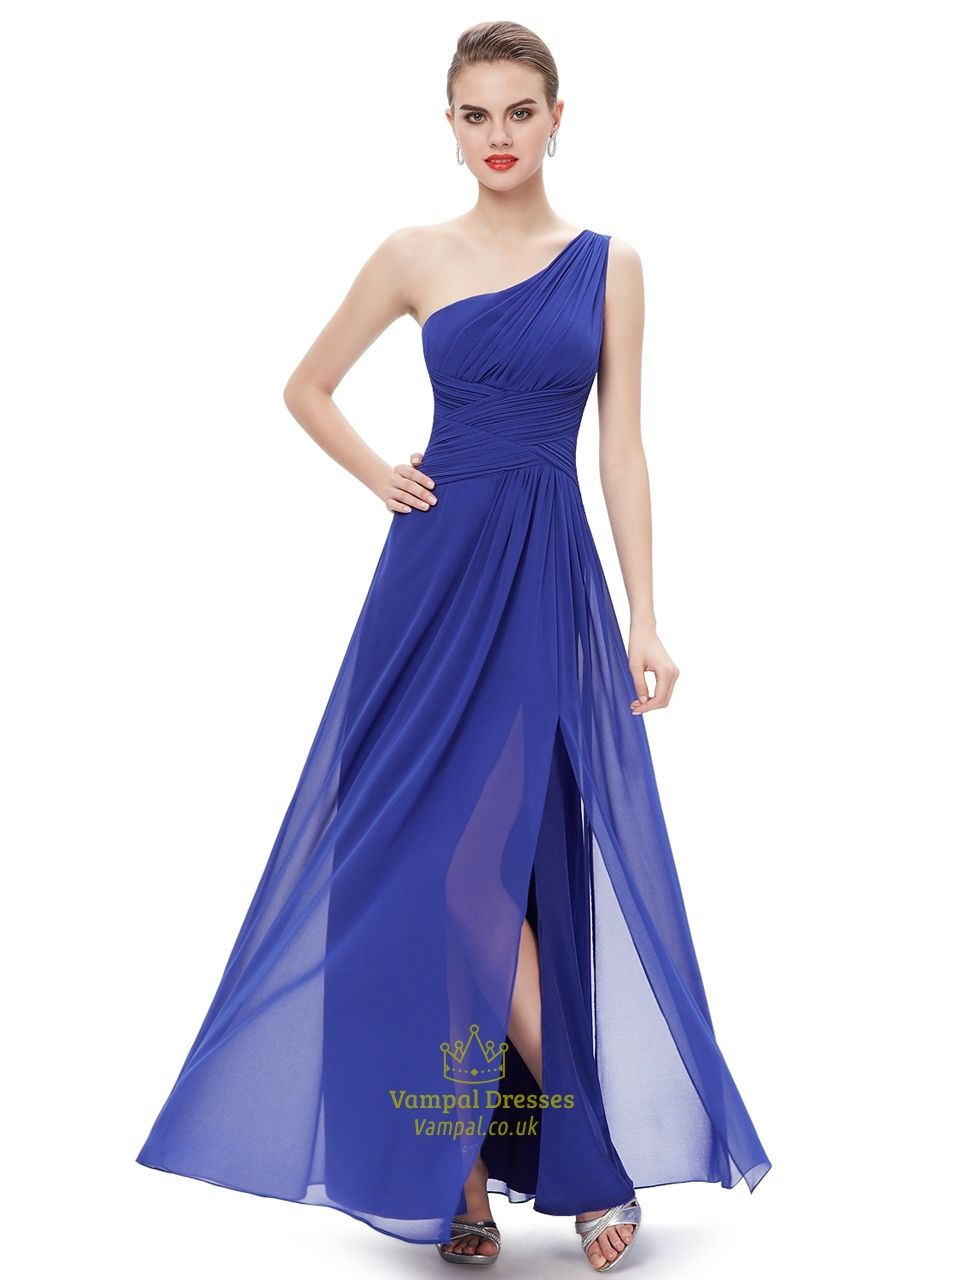 Fashion week Blue royal bridesmaid dresses chiffon for girls